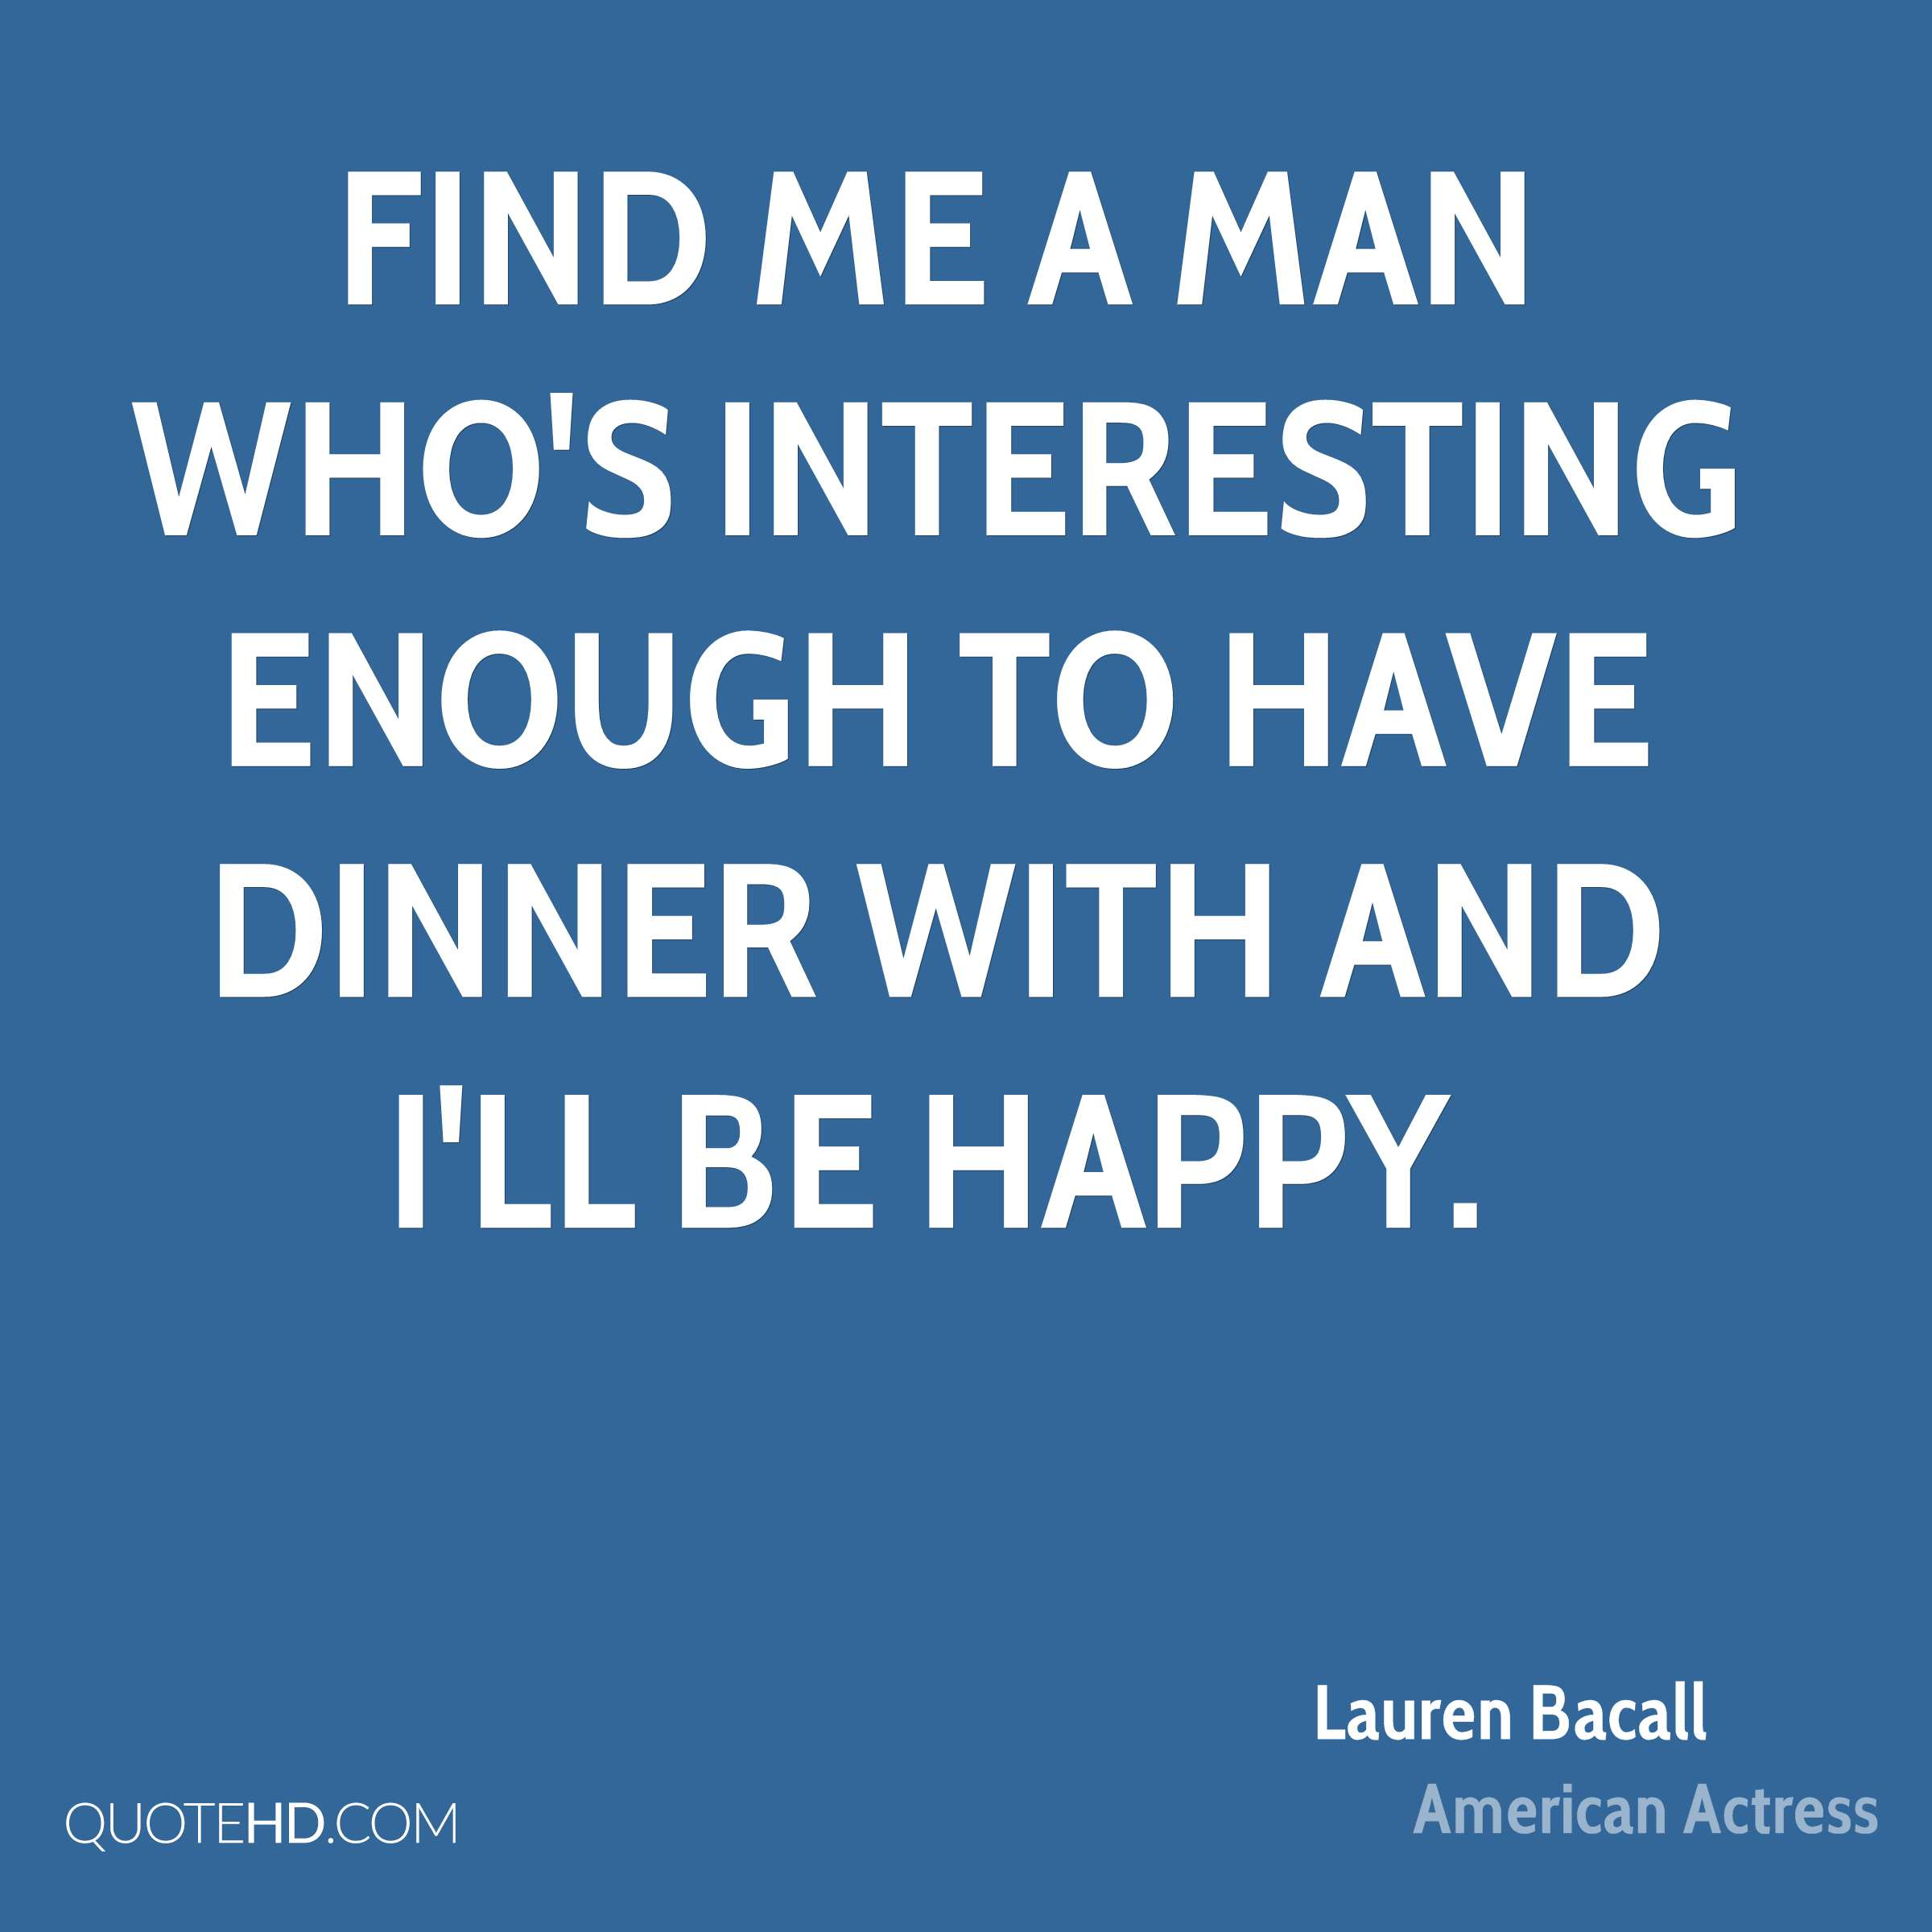 Find me a man who's interesting enough to have dinner with and I'll be happy.